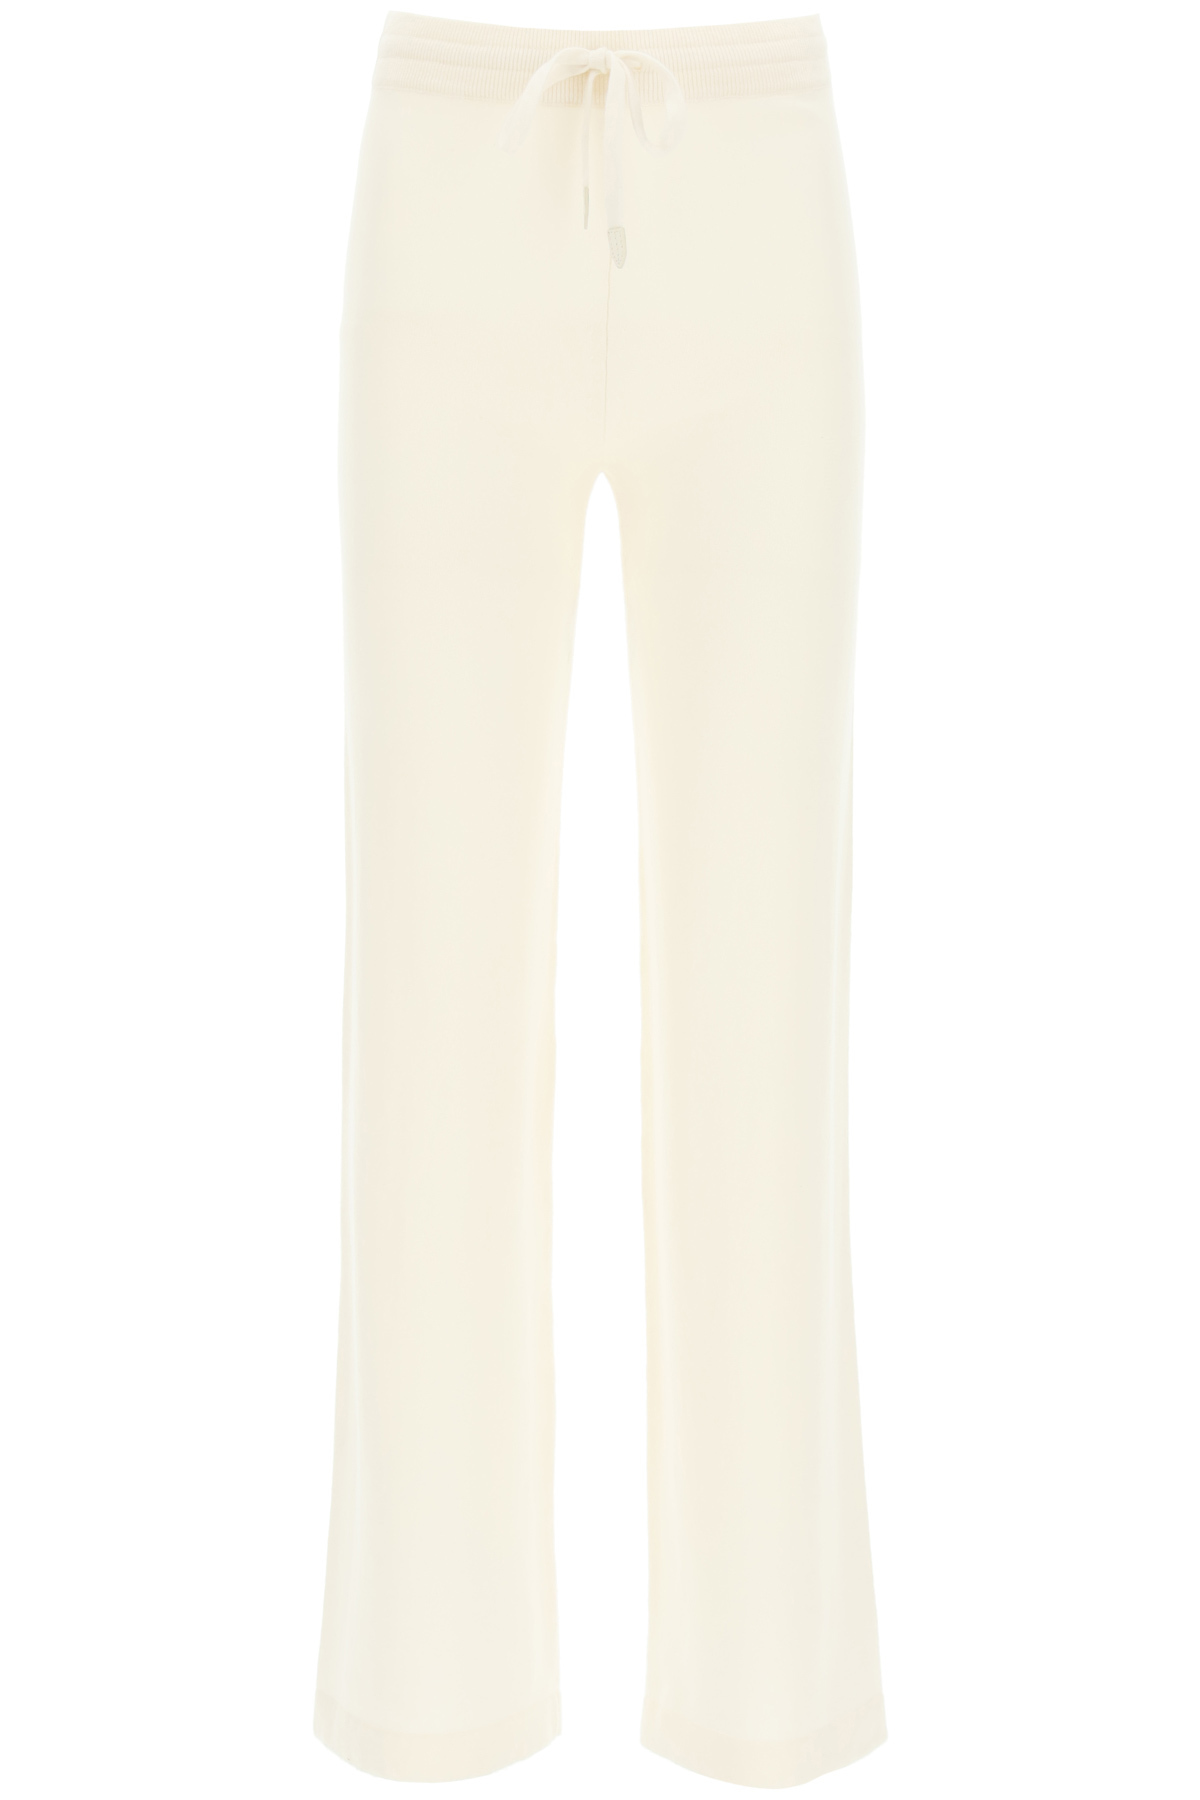 Salvatore Ferragamo SPORTS TROUSERS IN CASHMERE AND WOOL